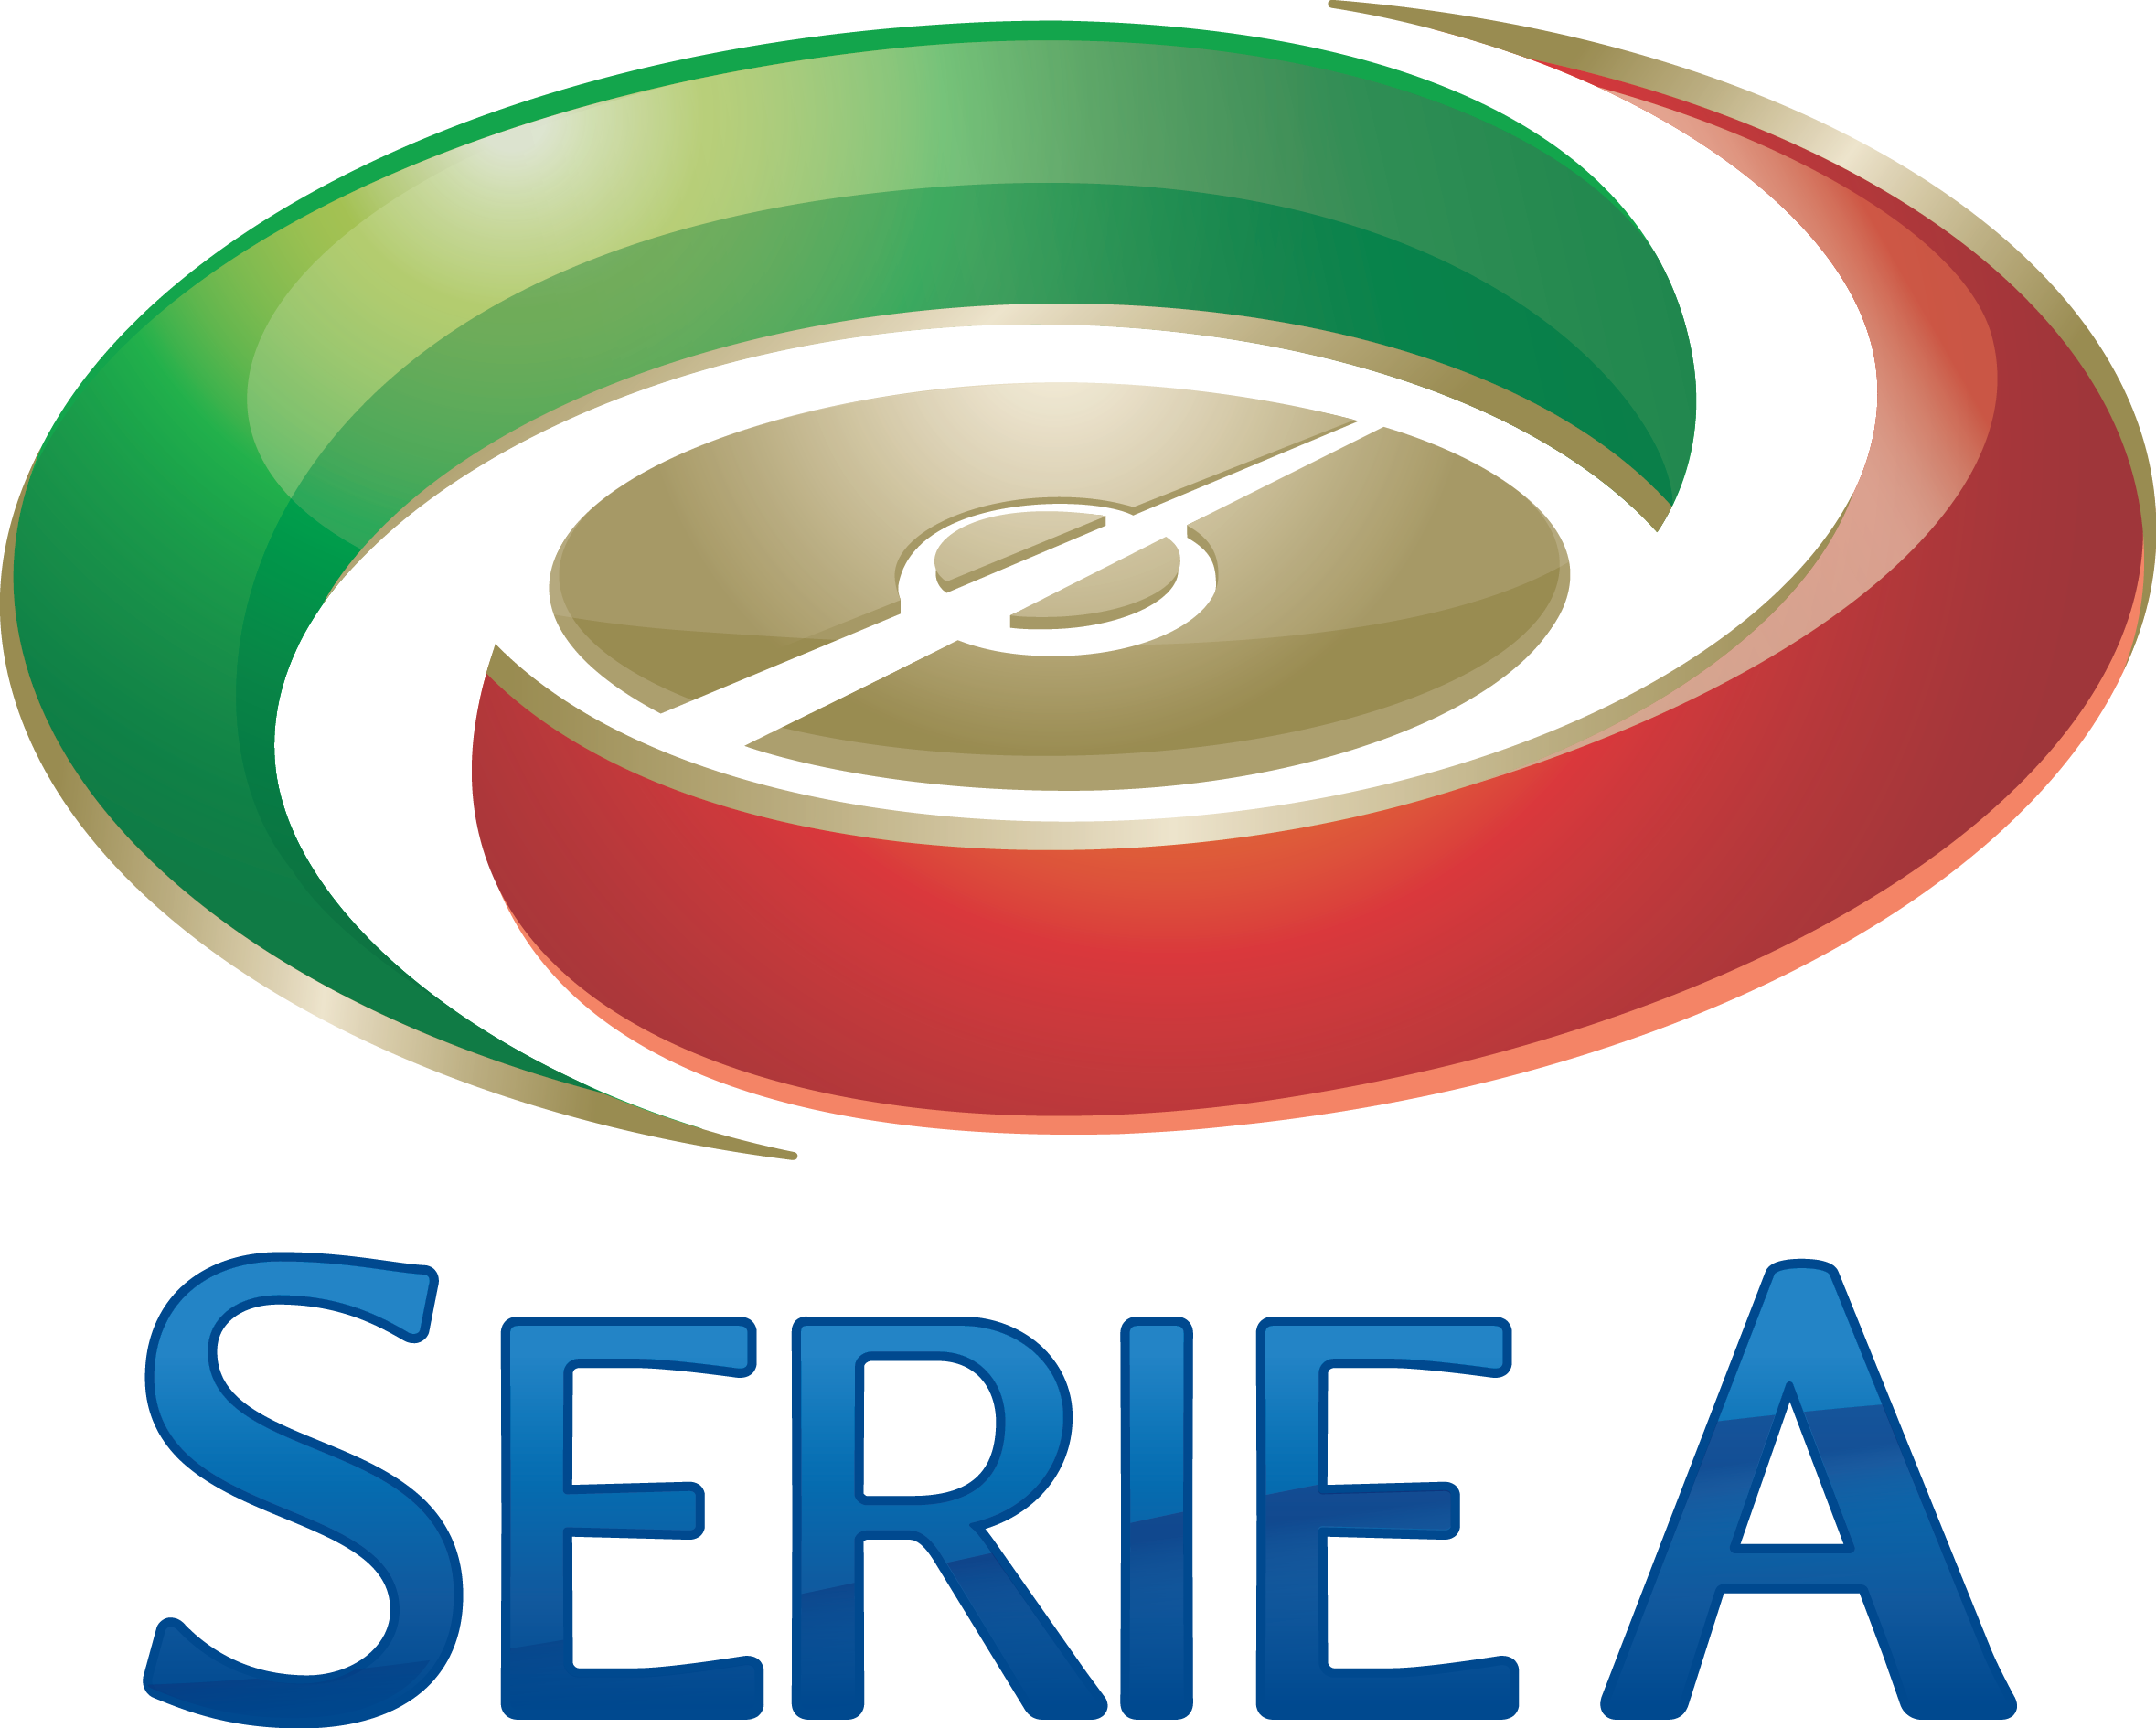 Sampdoria vs Inter Milan 1-1 All goals and highlights 04/10/2015